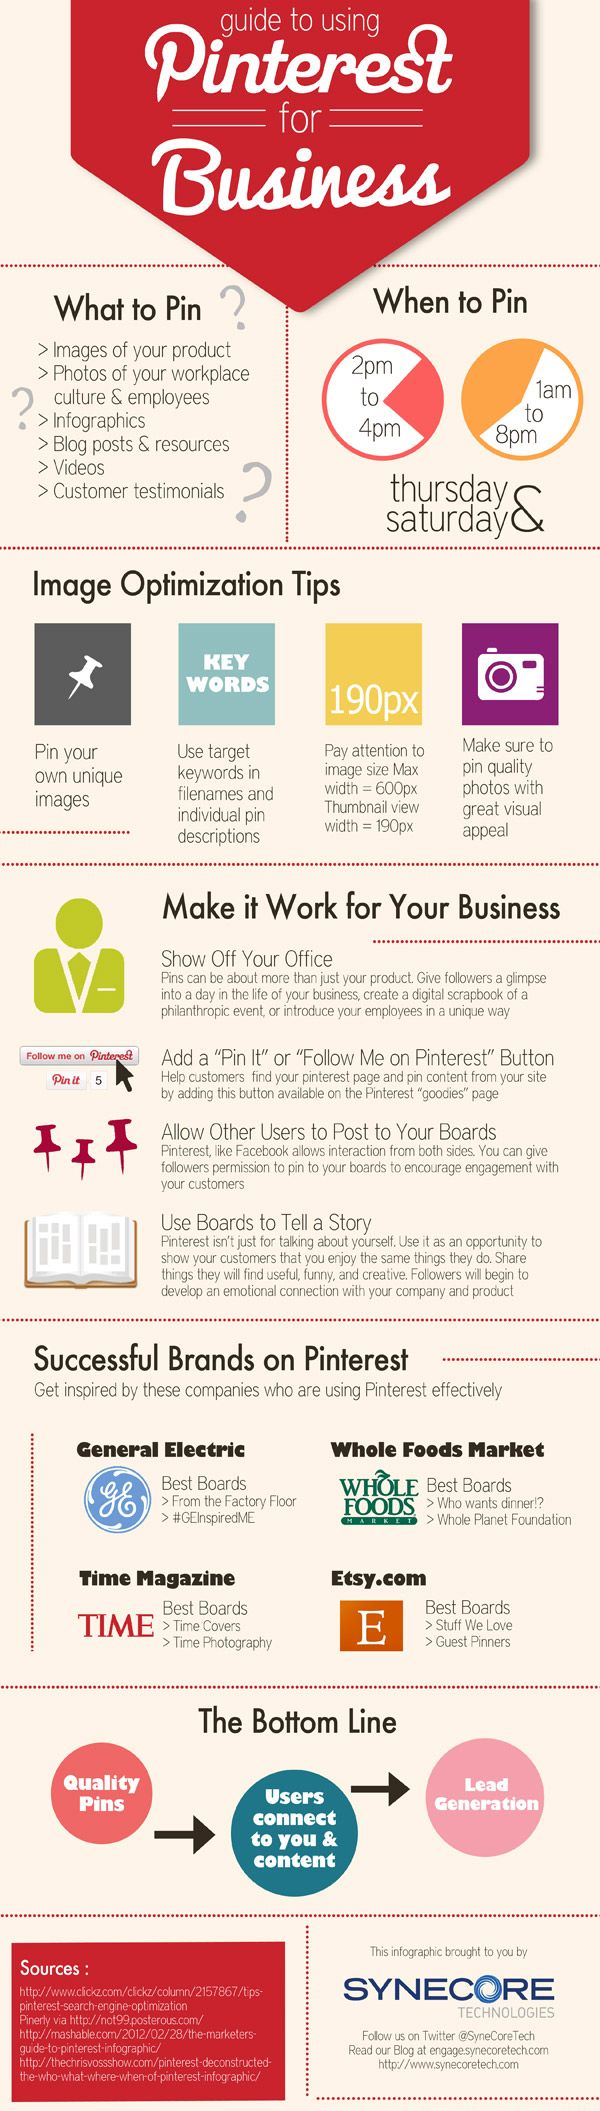 Liked on Pinterest: Pinterest For Business: Quick and easy tips on how to make Pinterest work for your business. #onlinebusinessopportunity #ecommerce #shopify